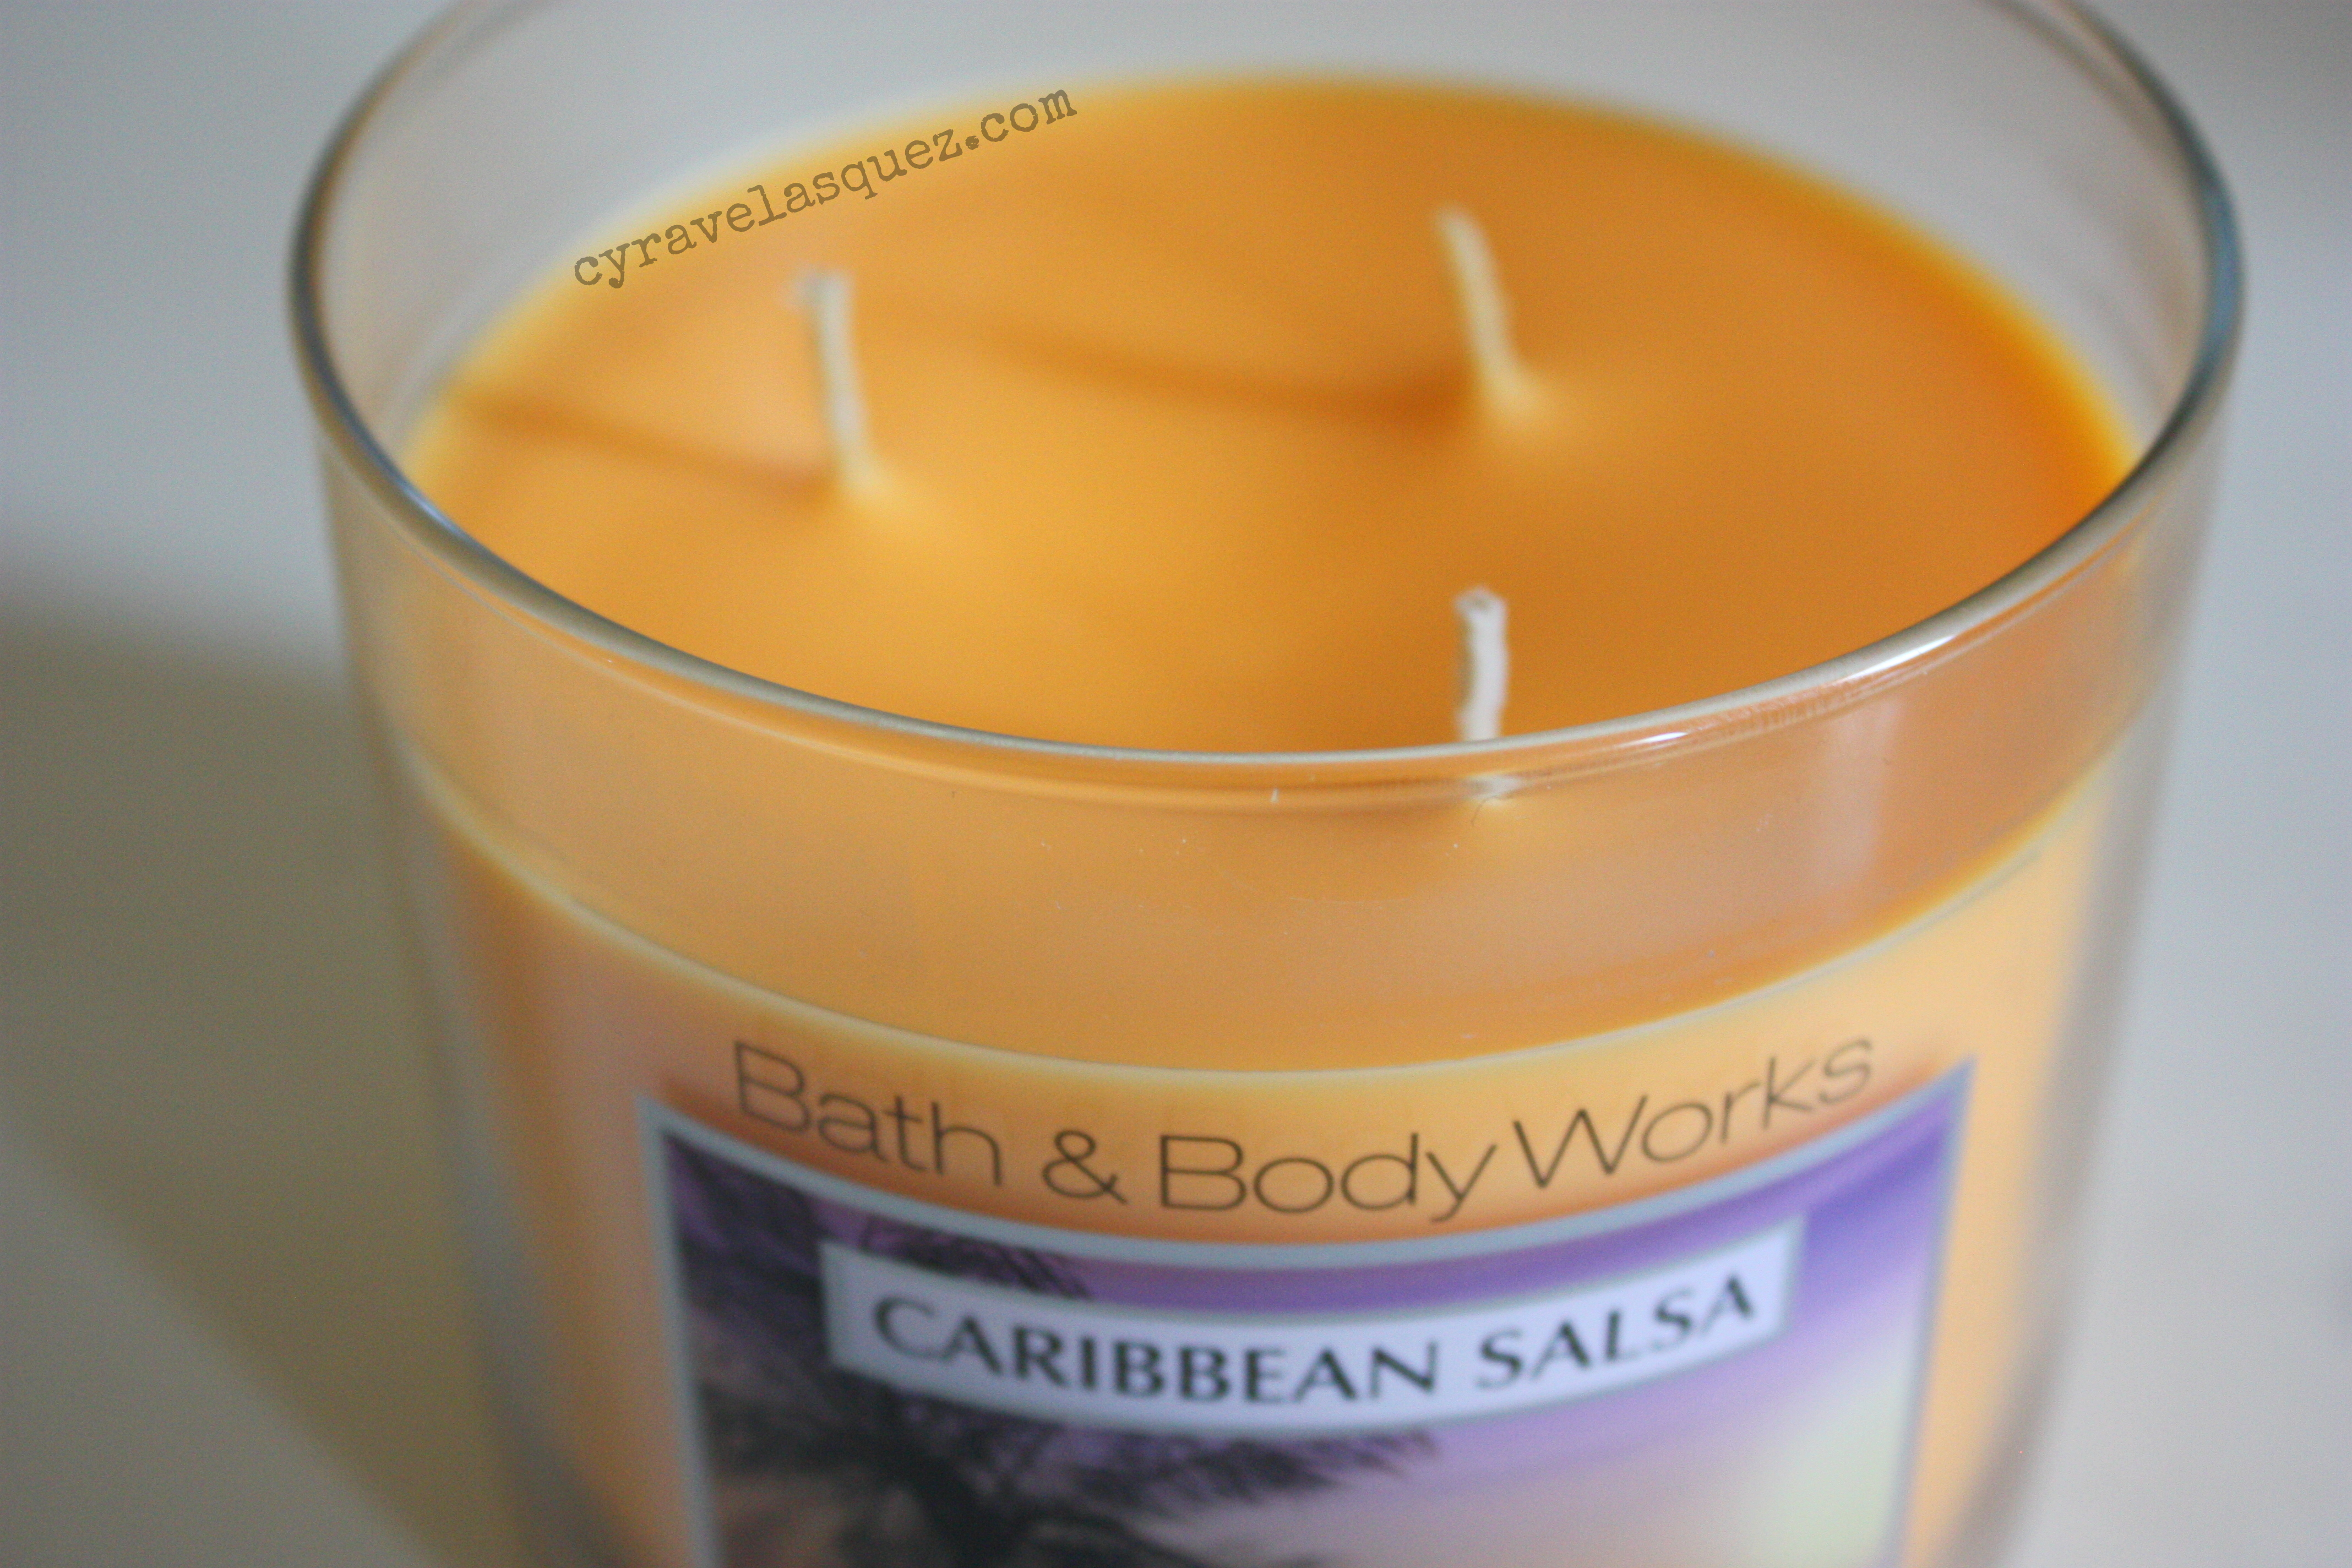 """Bath and Body Works three-wick candle in """"Caribbean Salsa"""""""